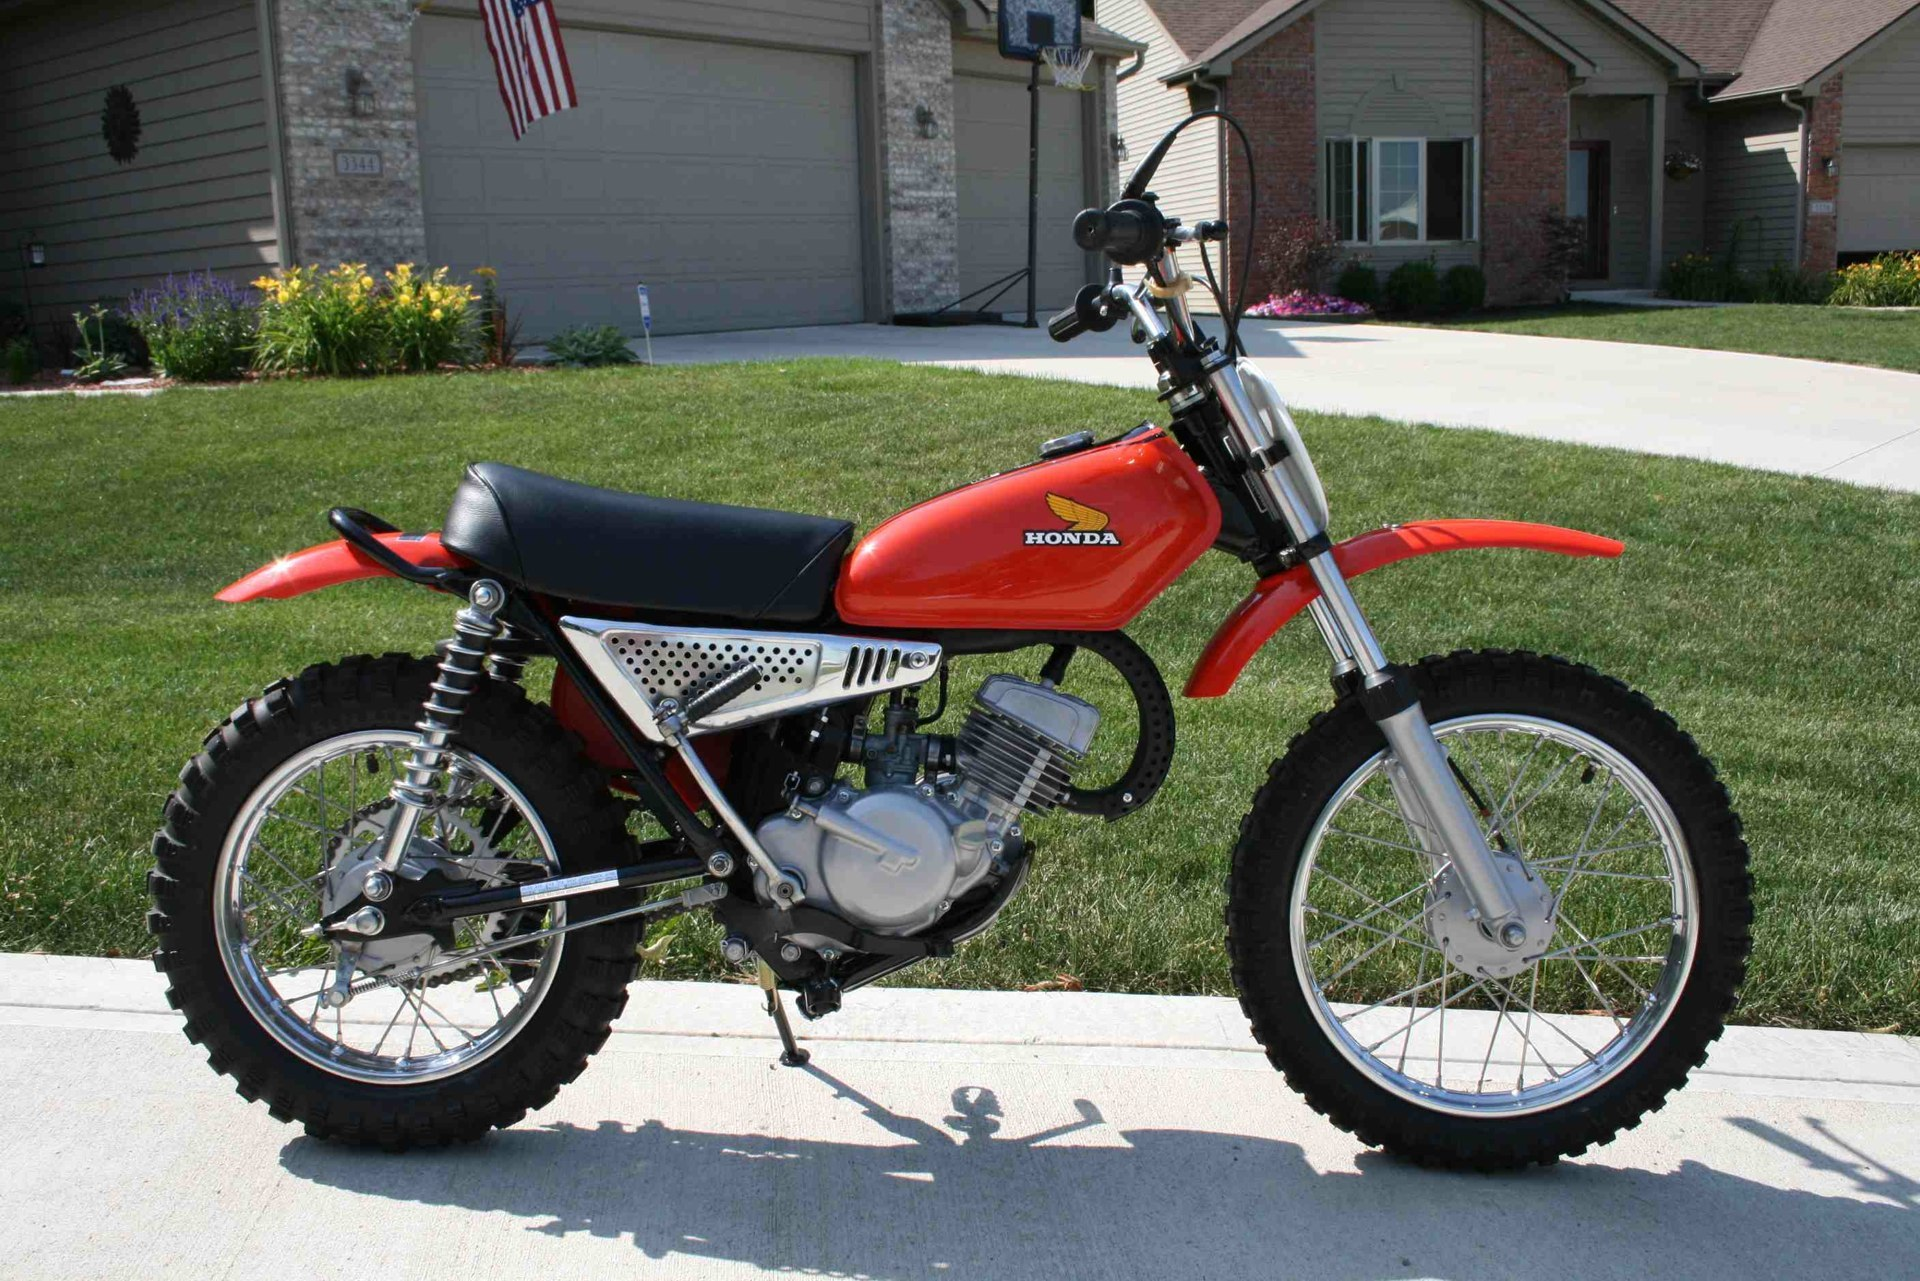 THE Honda Elsinore Site Bike The Month August 2008